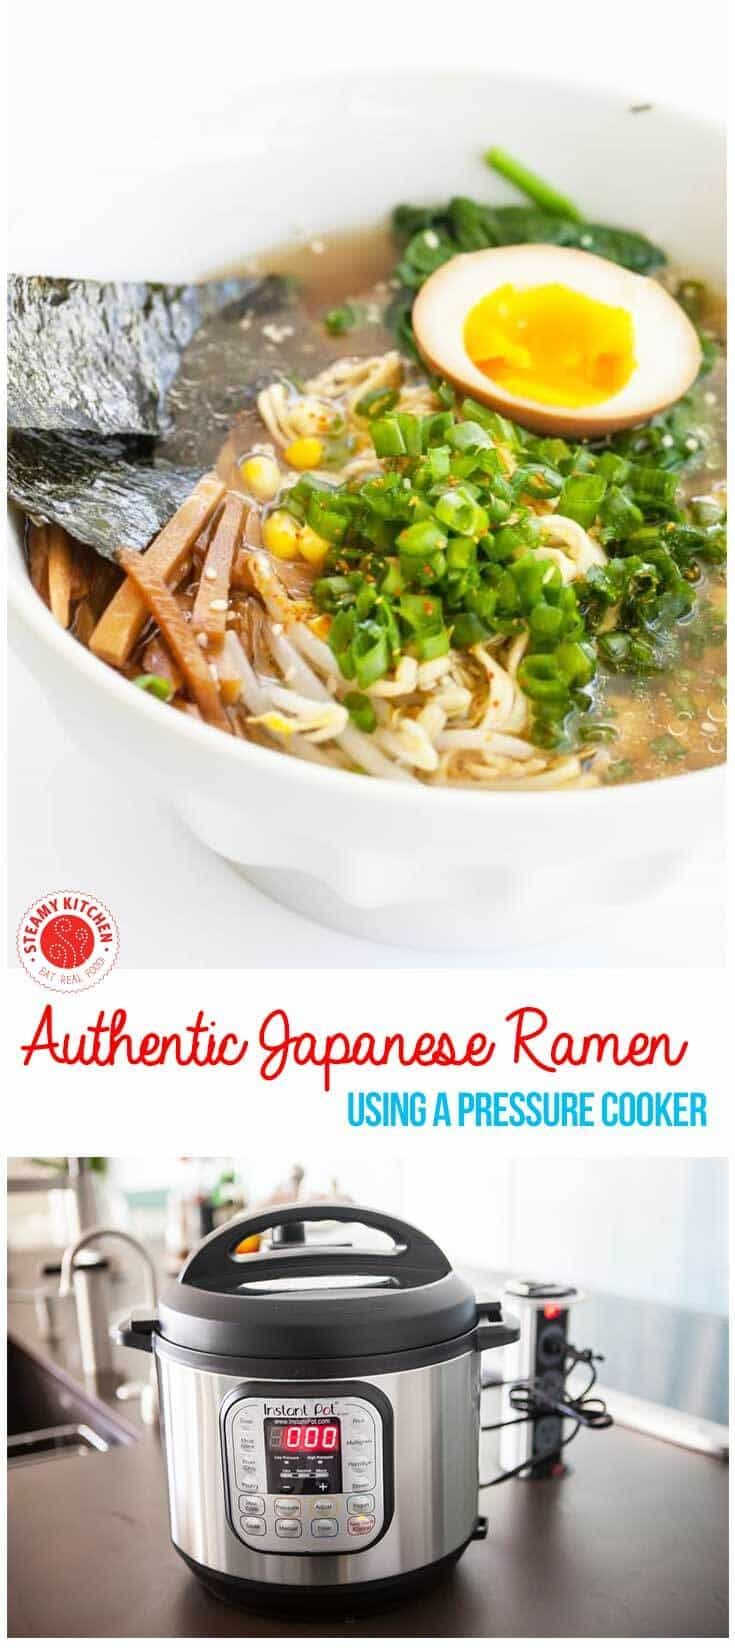 Make authentic Japanese ramen broth with a pressure cooker. Simple, step by step recipe. ~ https://steamykitchen.com